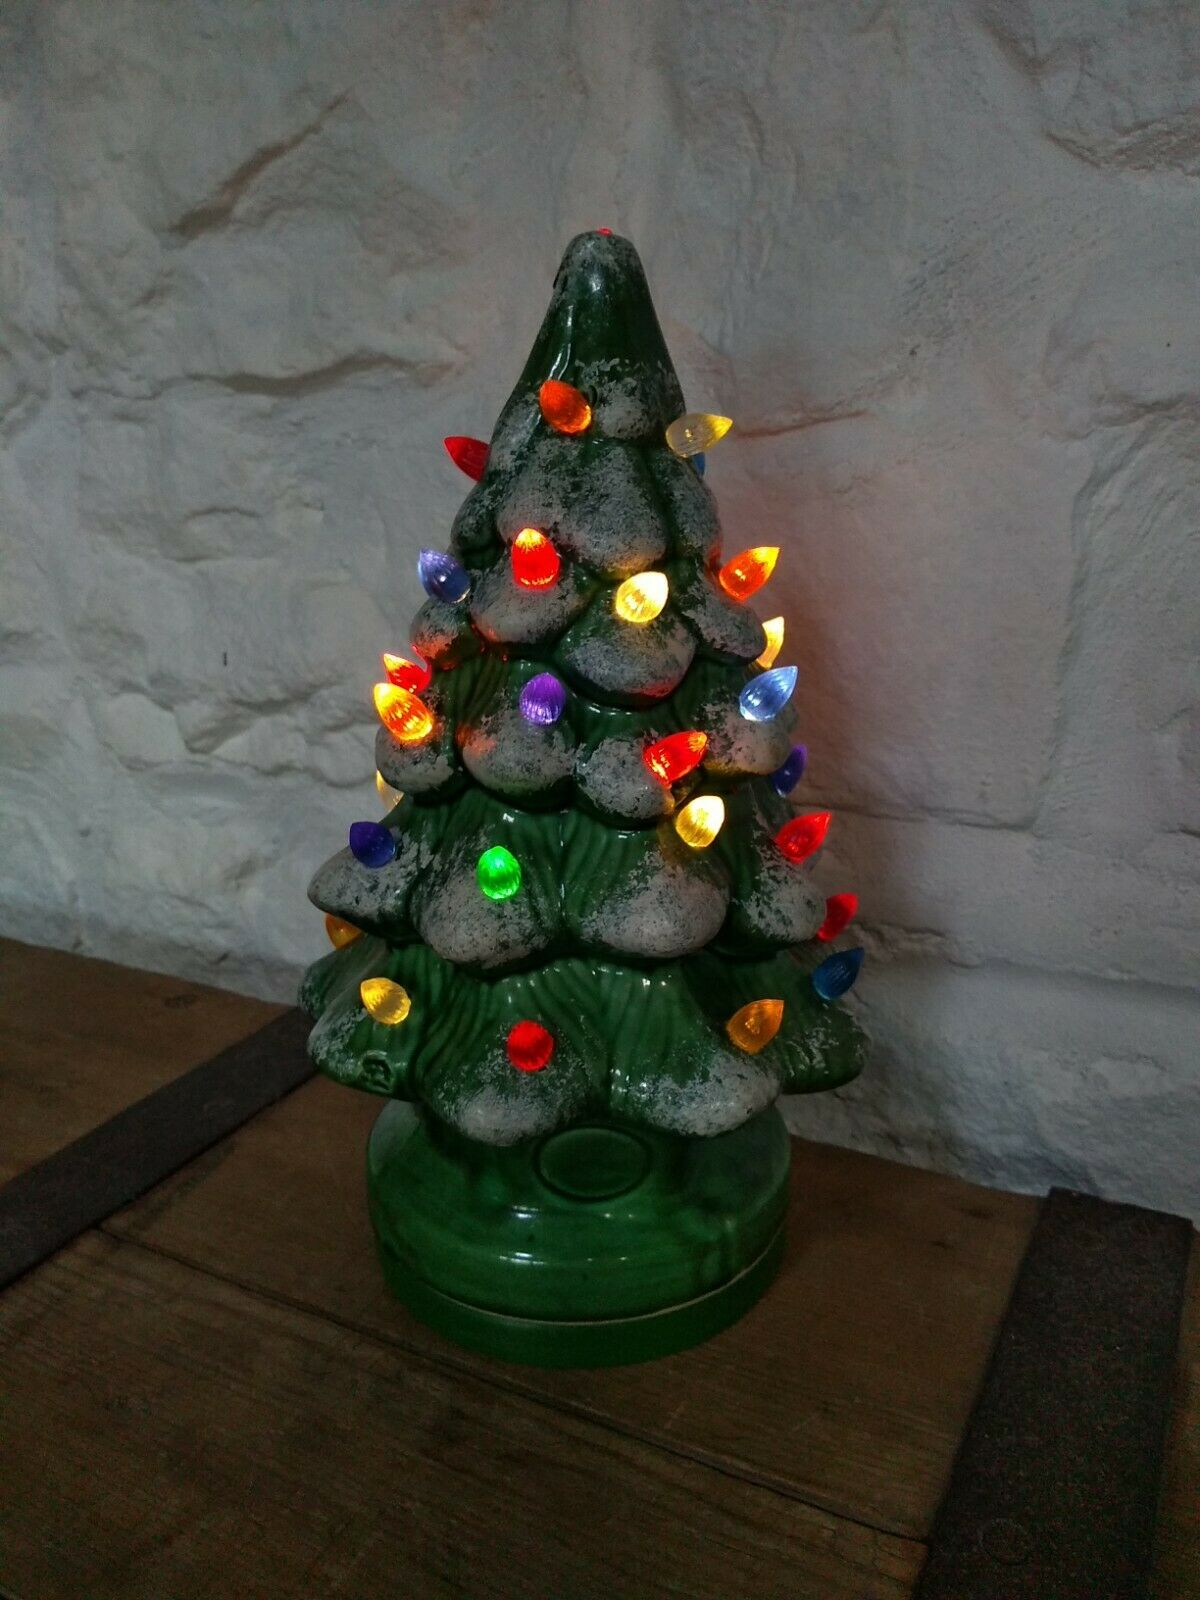 Vintage Ceramic Christmas Tree. Lamp Light Base Lights Up. Retro Xmas Decoration